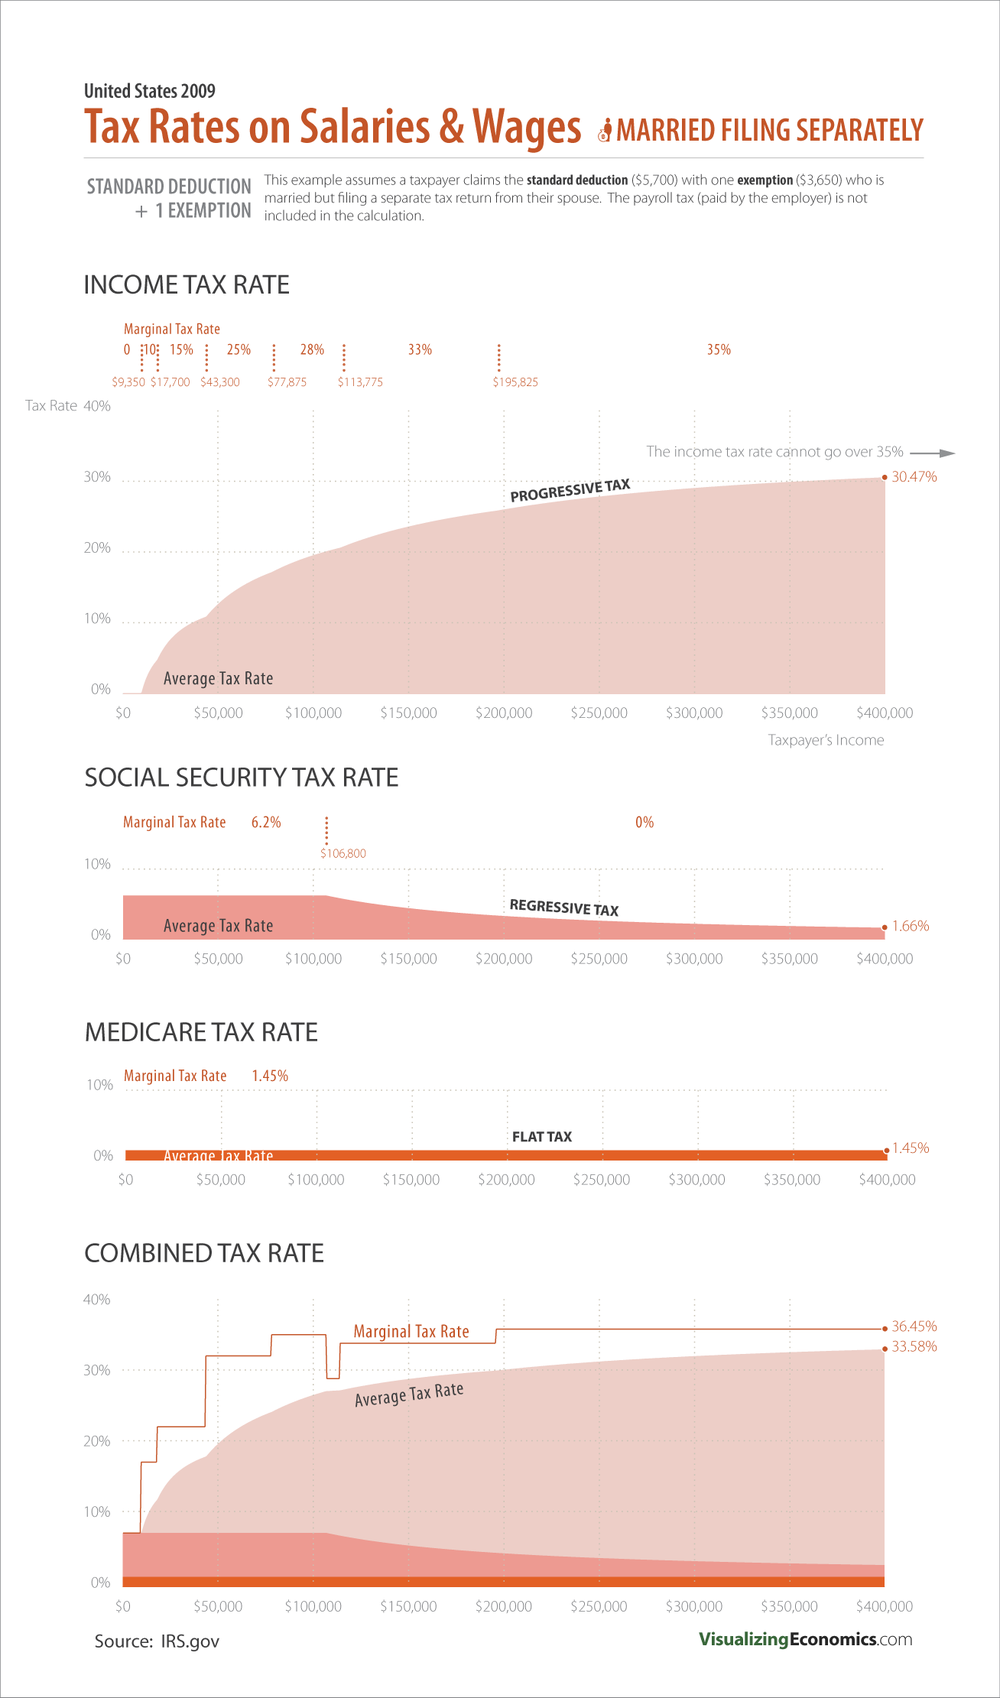 TaxRate_marriedfilingseperate_2009-01.png